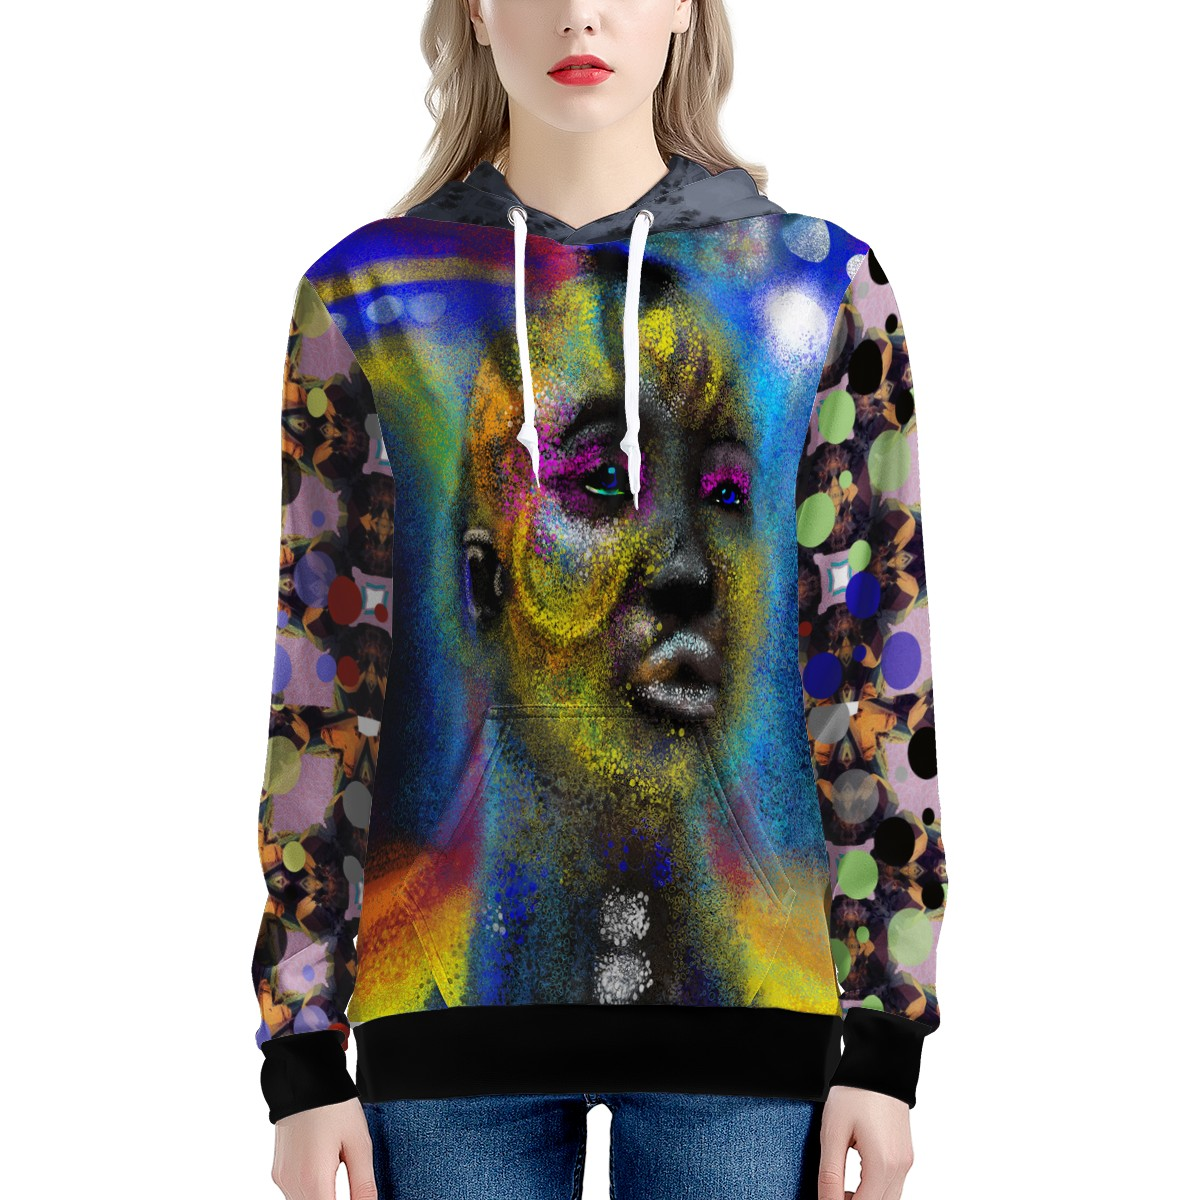 lady of the black Hole All Over Print Hoodie